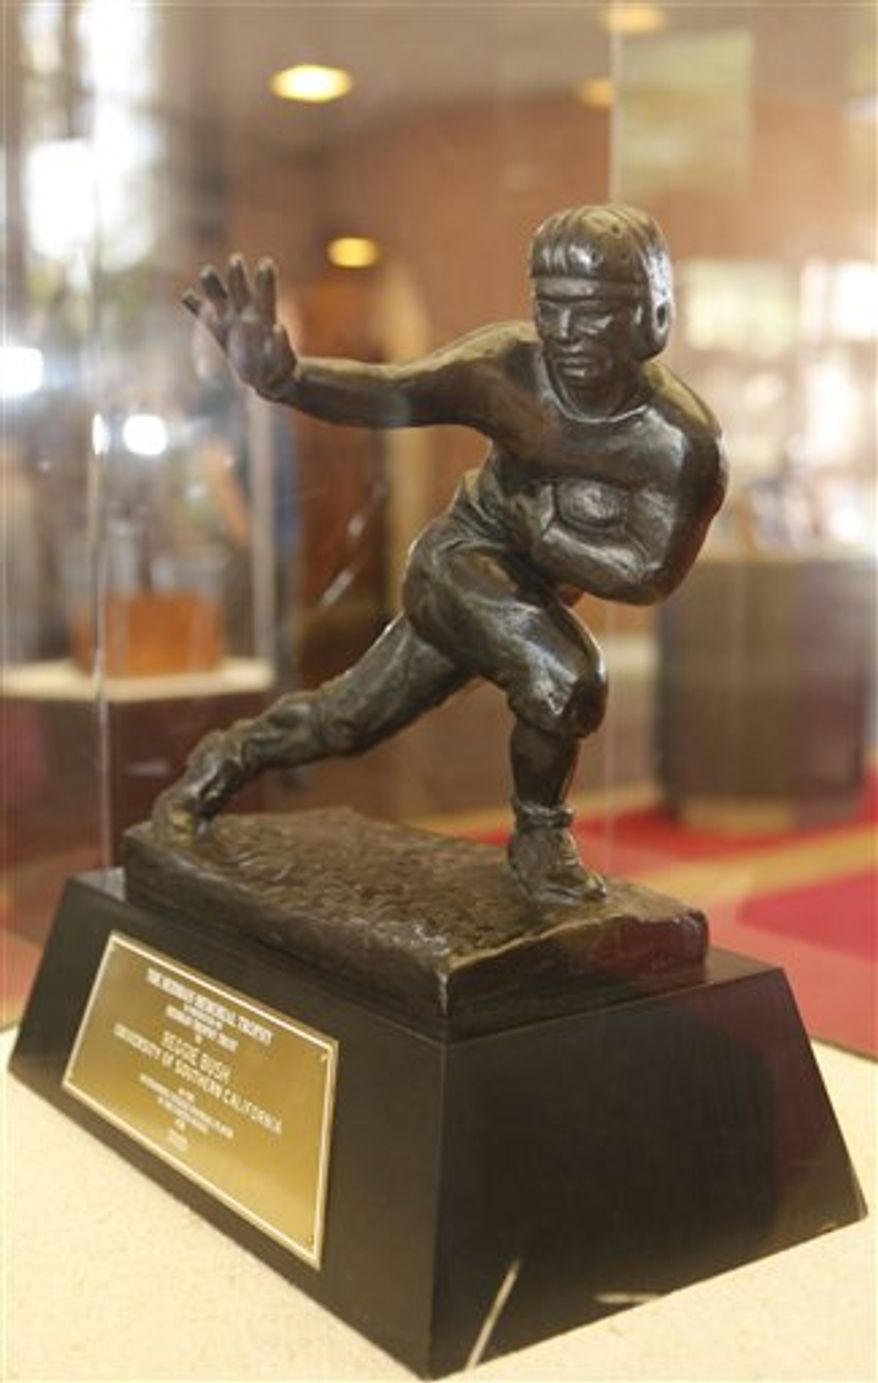 University of Southern California's Reggie Bush Heisman Trophy is displayed at the Heritage Hall on the USC campus in Los Angeles on Tuesday, July 20, 2010. USC will return Bush's trophy to the Heisman Trophy Trust next month, possibly indicating the trophy will be revoked in the future. The school will take down any jerseys or murals recognizing the former star tailback or basketball player O.J. Mayo, the other major figure in the four-year NCAA investigation. (AP Photo/Damian Dovarganes)